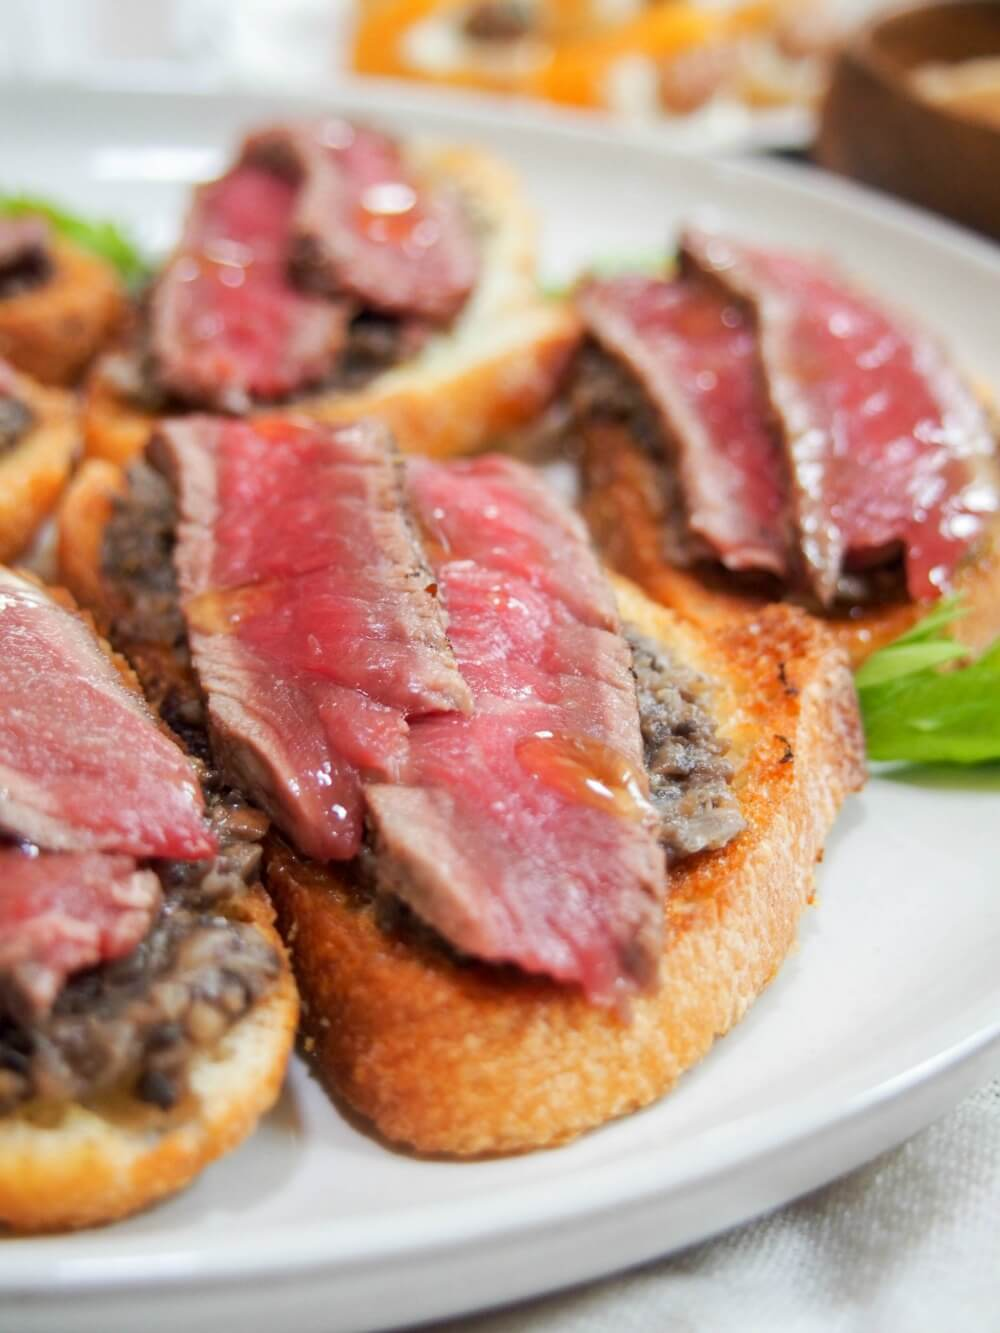 Steak crostini with mushroom pate and truffle oil: If you're looking for an easy but impressive appetizer, look no further than this steak crostini. It's a delicious combination and the truffle oil drizzle really takes it over the top. You can also prepare most of it in advance, with a quick finish. Perfect for entertaining, New Year's parties and more.